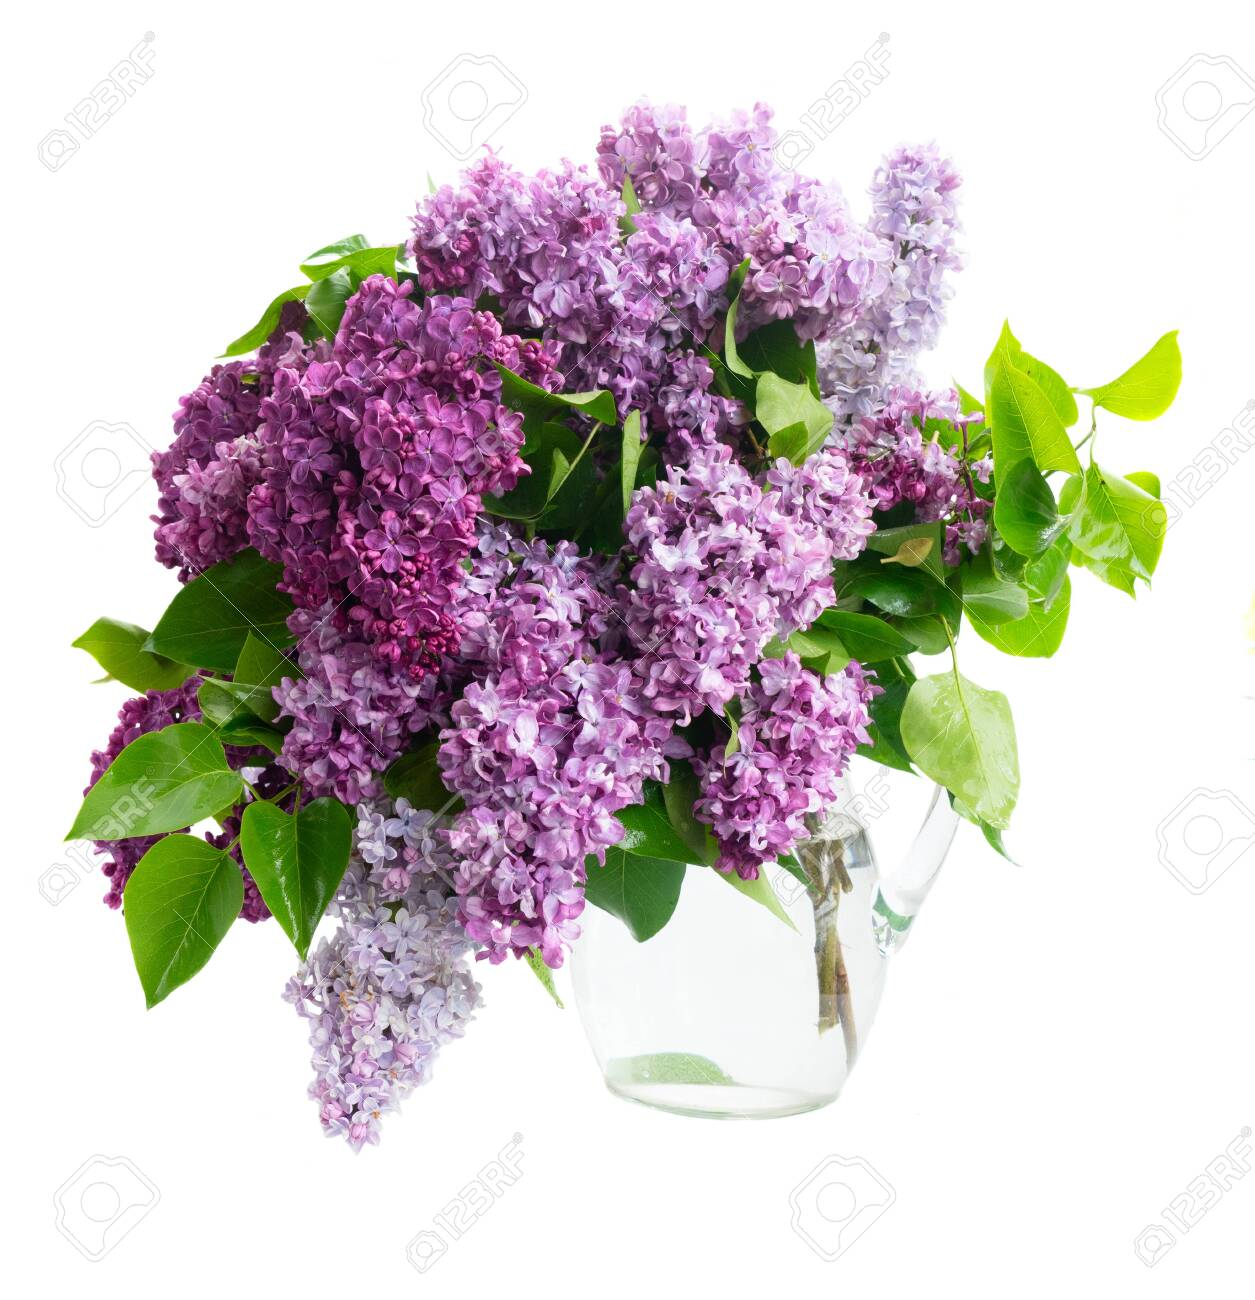 Fresh lilac flowers twigs bouquet isolated over white - 131001996